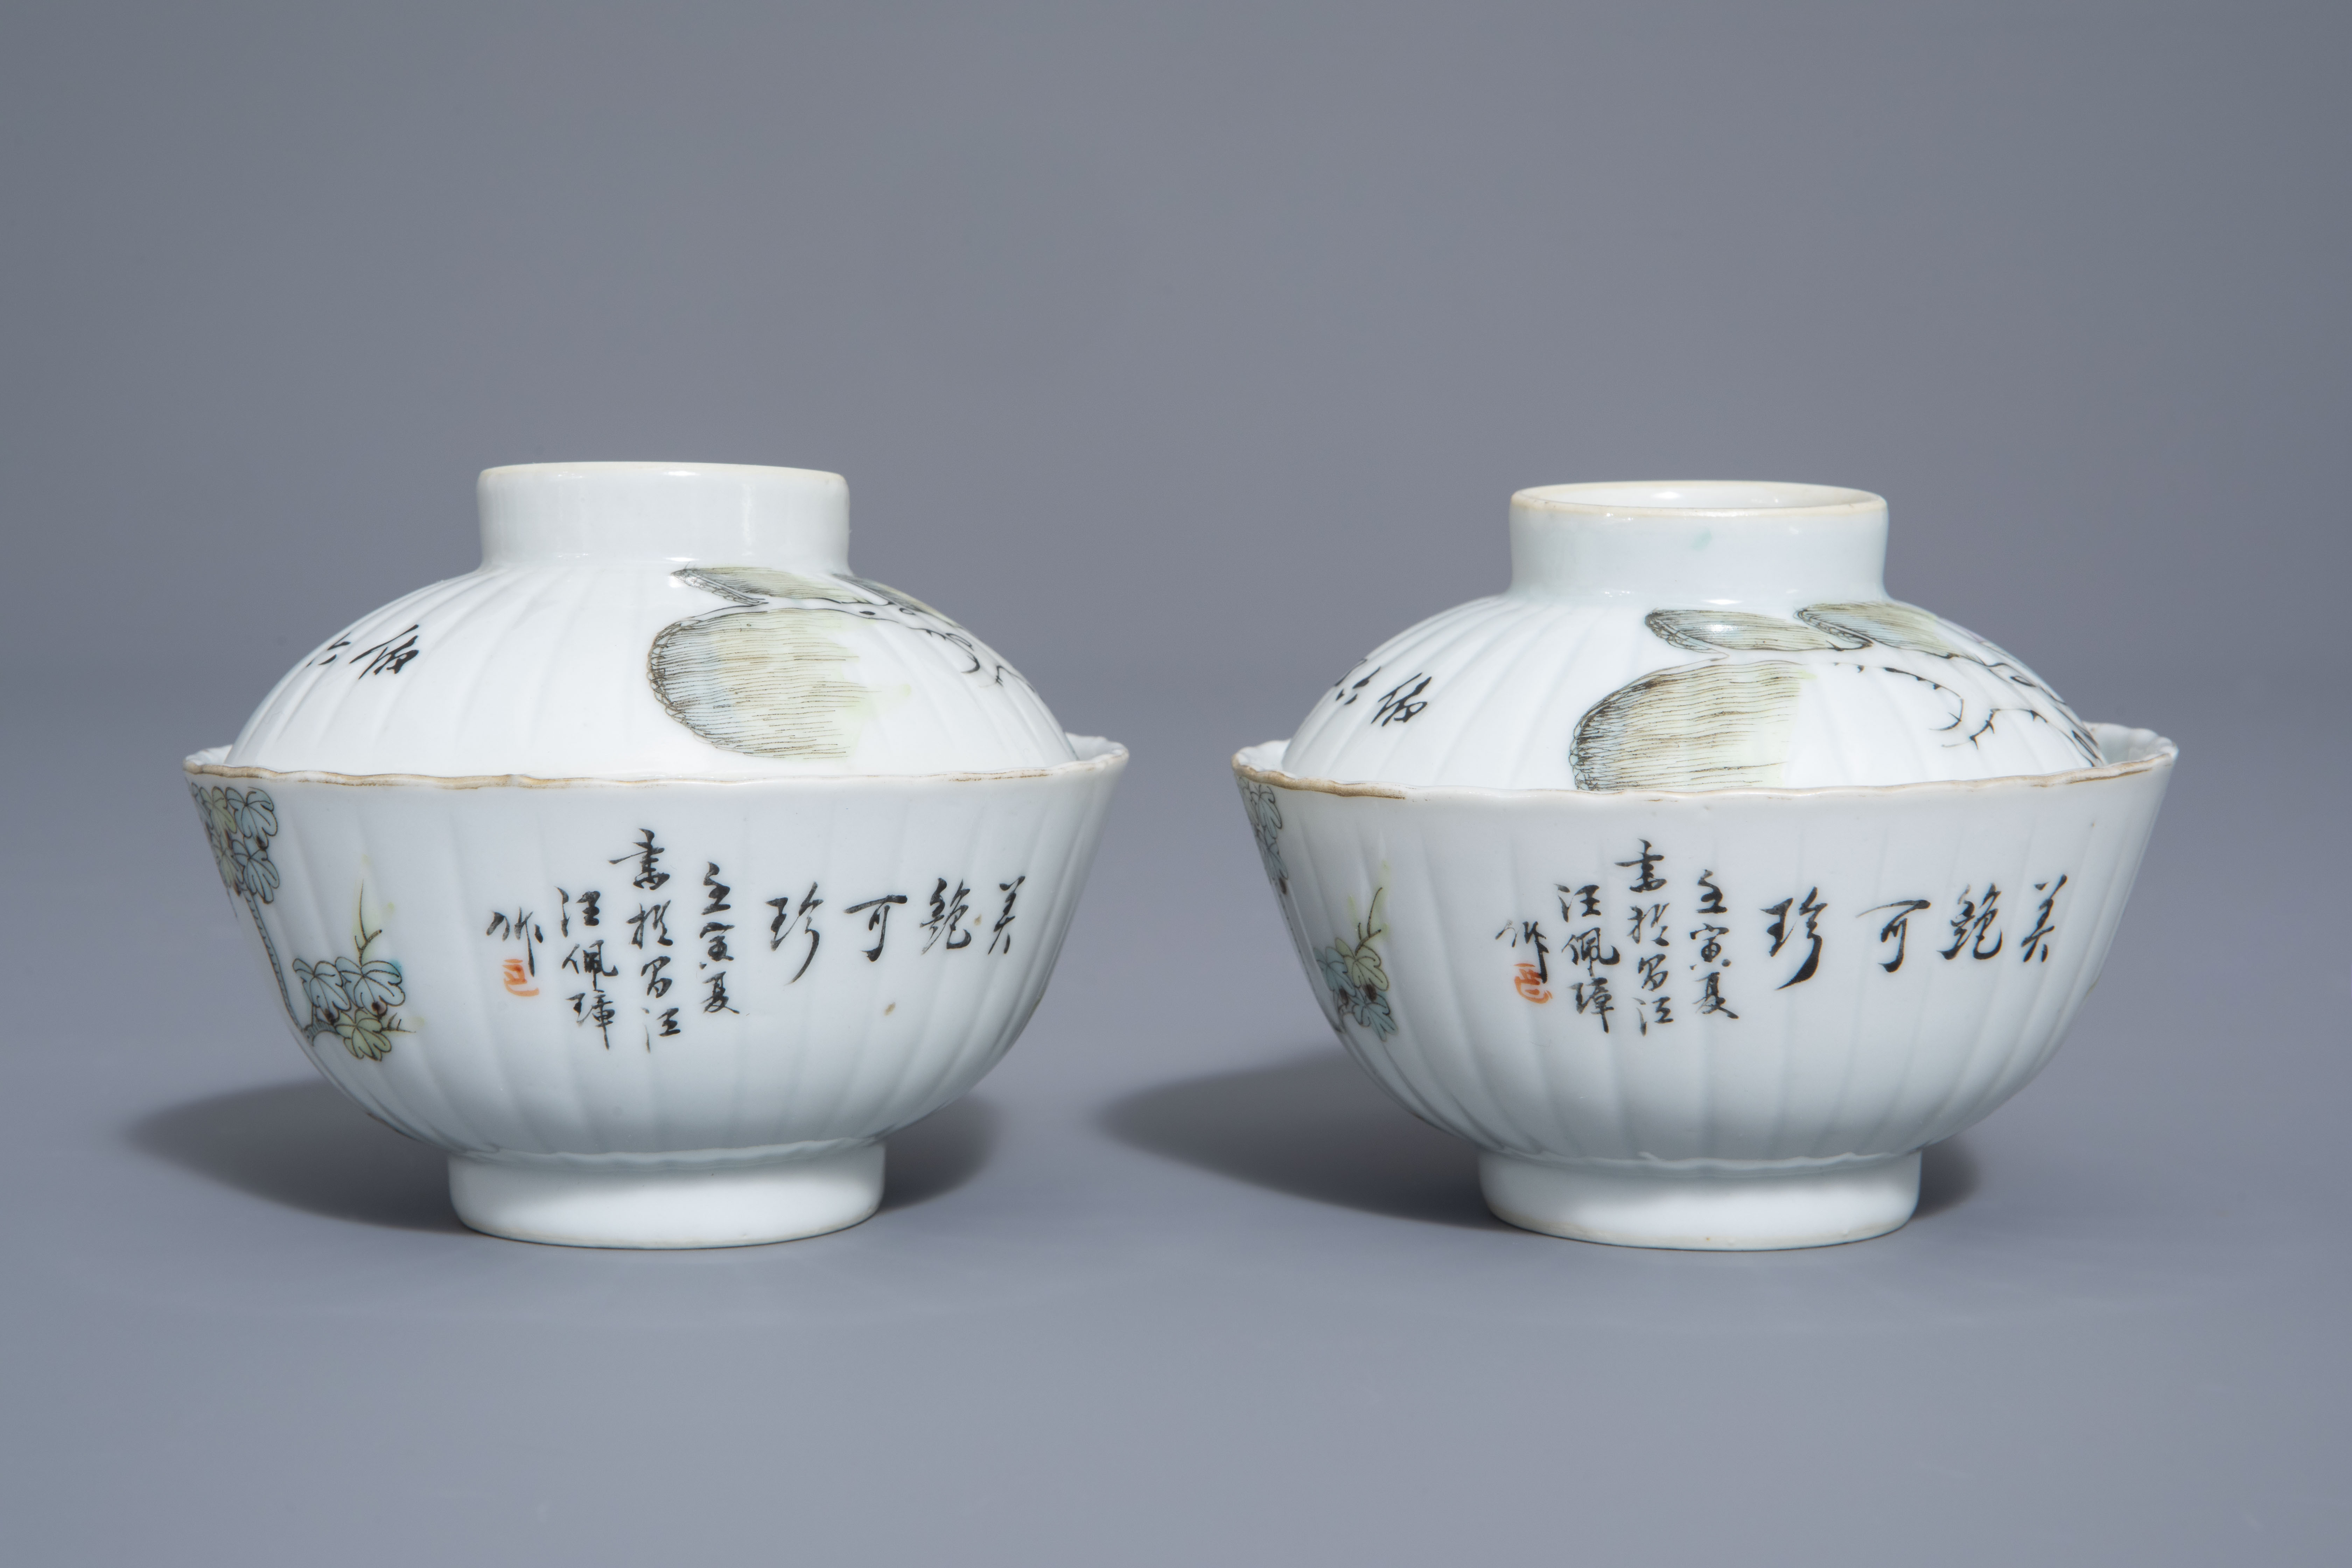 A Chinese seven-piece qianjiang cai tea service with figurative design, 19th/20th C. - Image 10 of 19